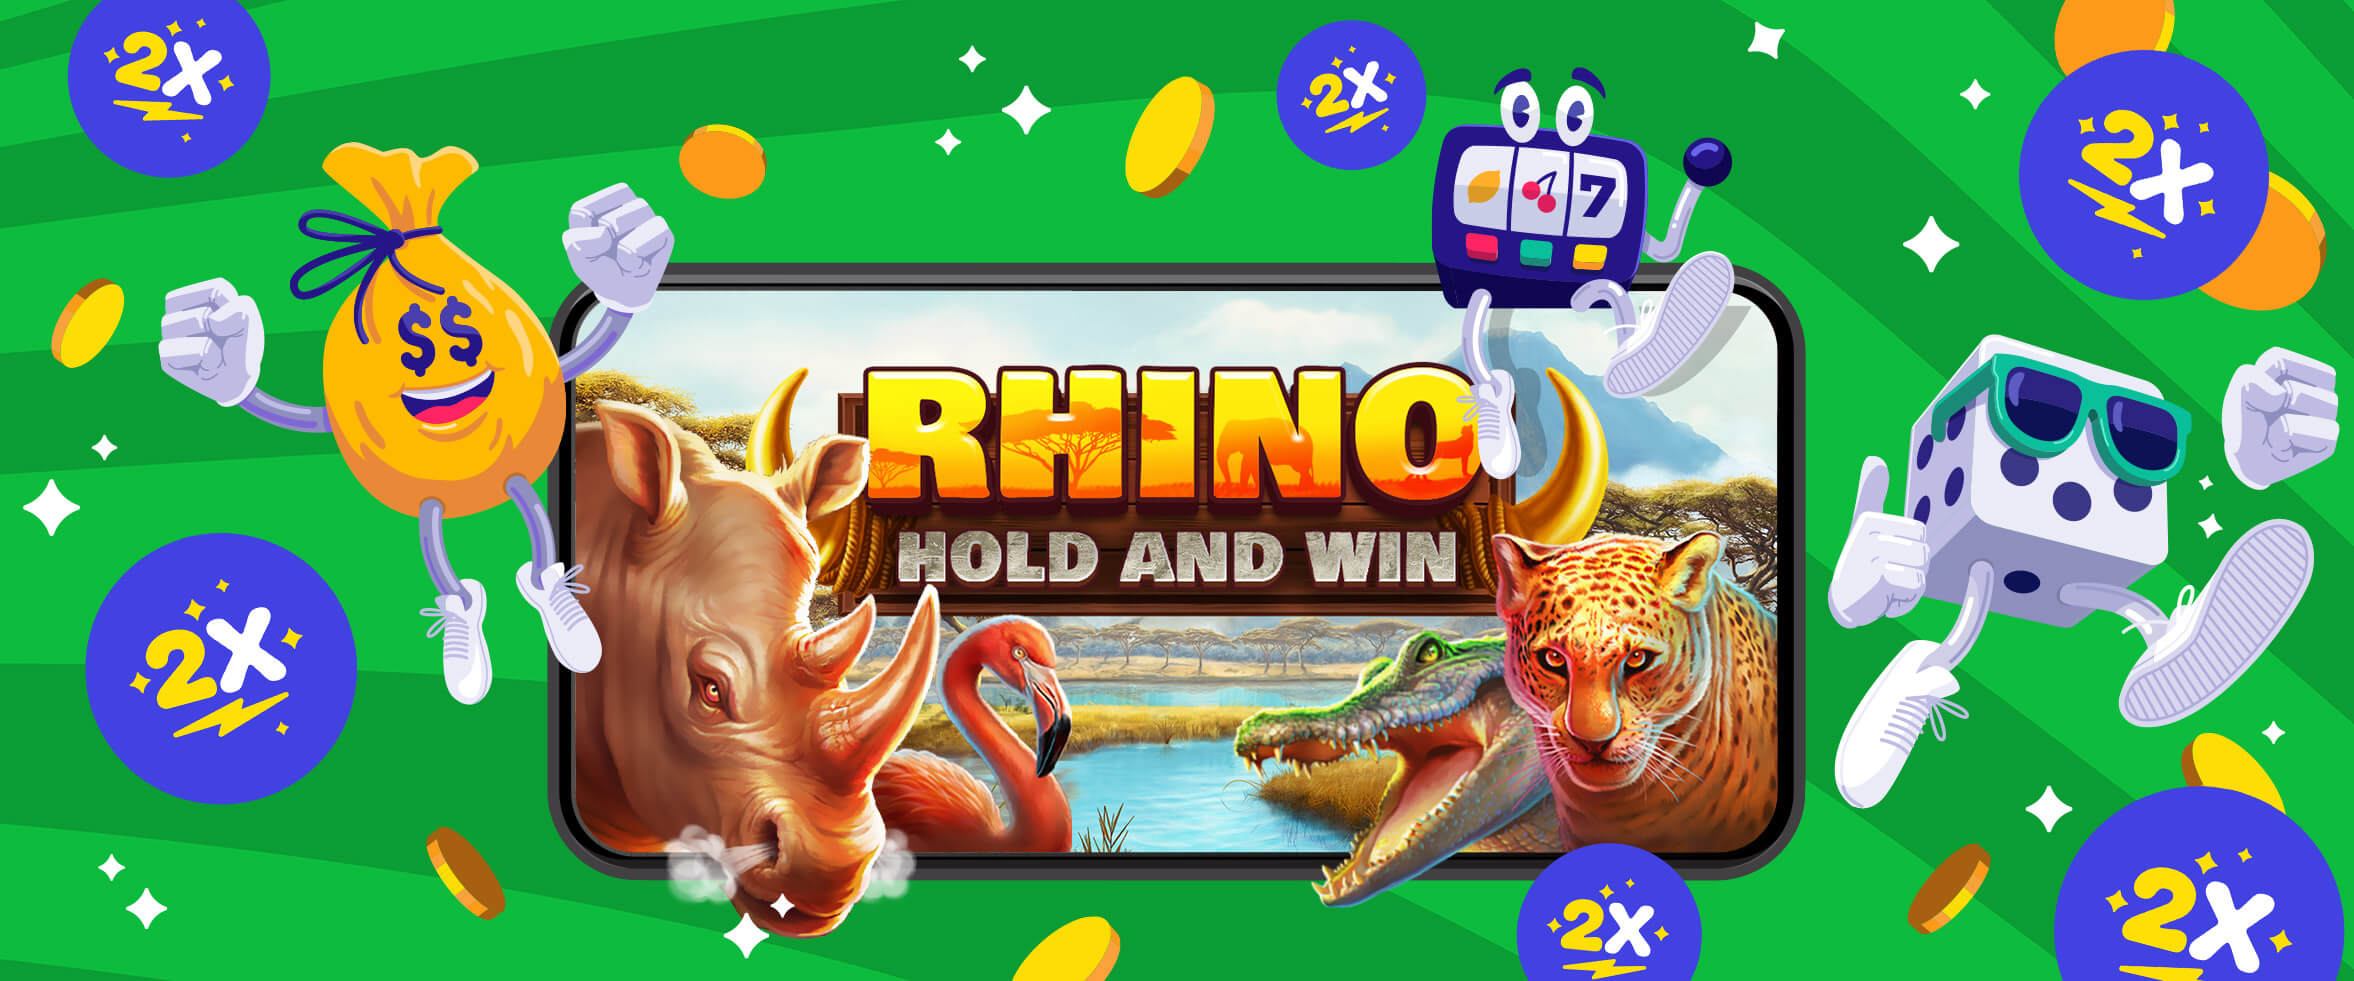 🦏 Double Vitesse sur Rhino Hold and Win 🦏